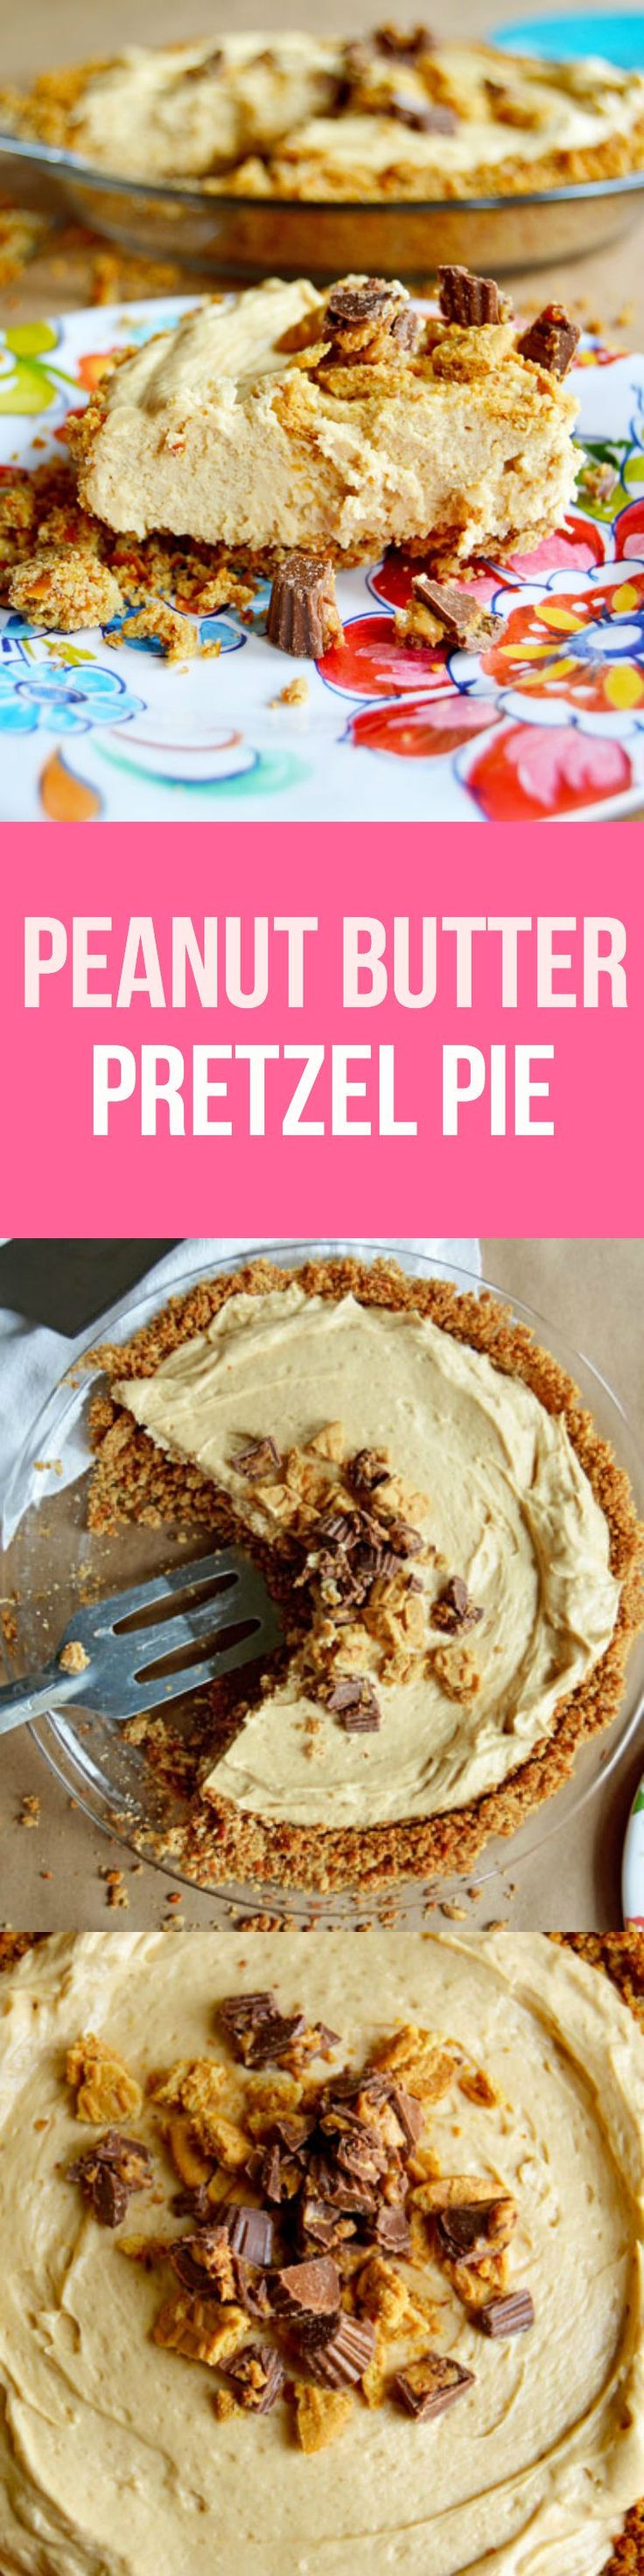 Peanut Butter Pretzel Pie - Salty pretzel & graham cracker crust, decadent peanut butter mousse filling, and peanut butter cup and Nutter Butter topping. So easy and ridiculously delicious! | www.thehungrytravelerblog.com